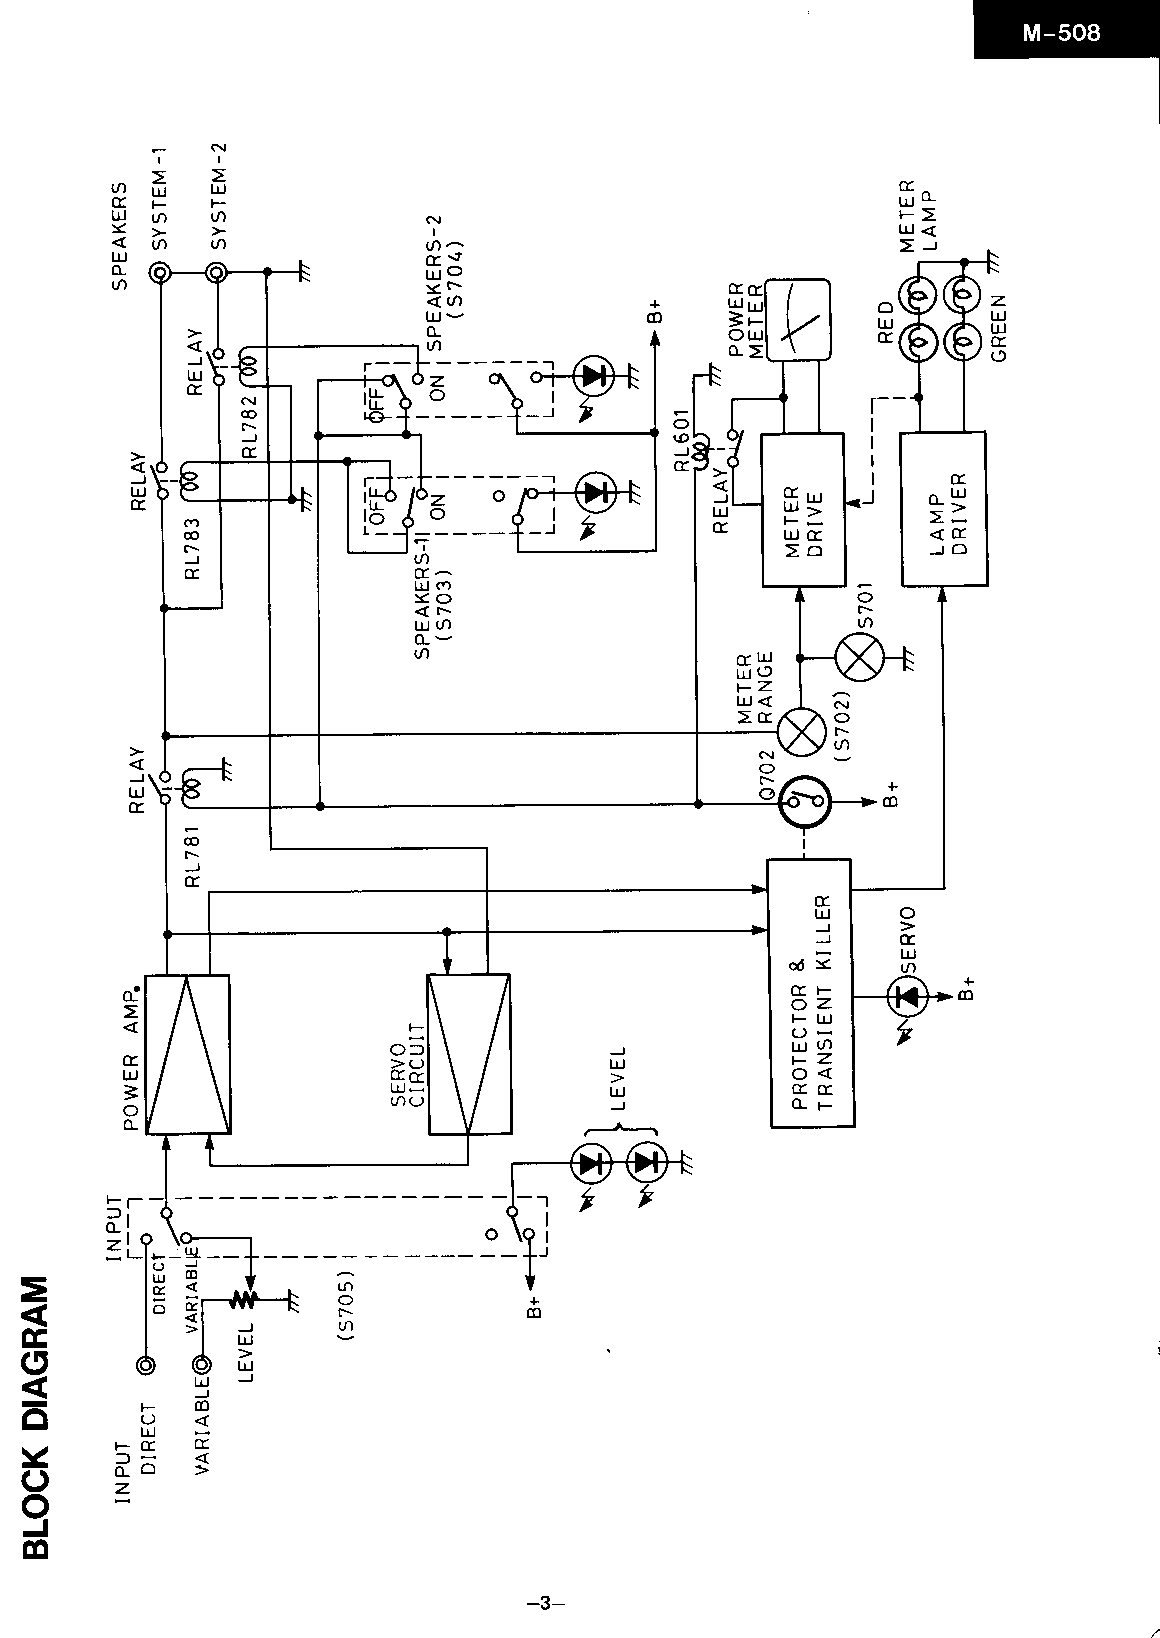 PDF manual for Onkyo Other M-504 Audio-component